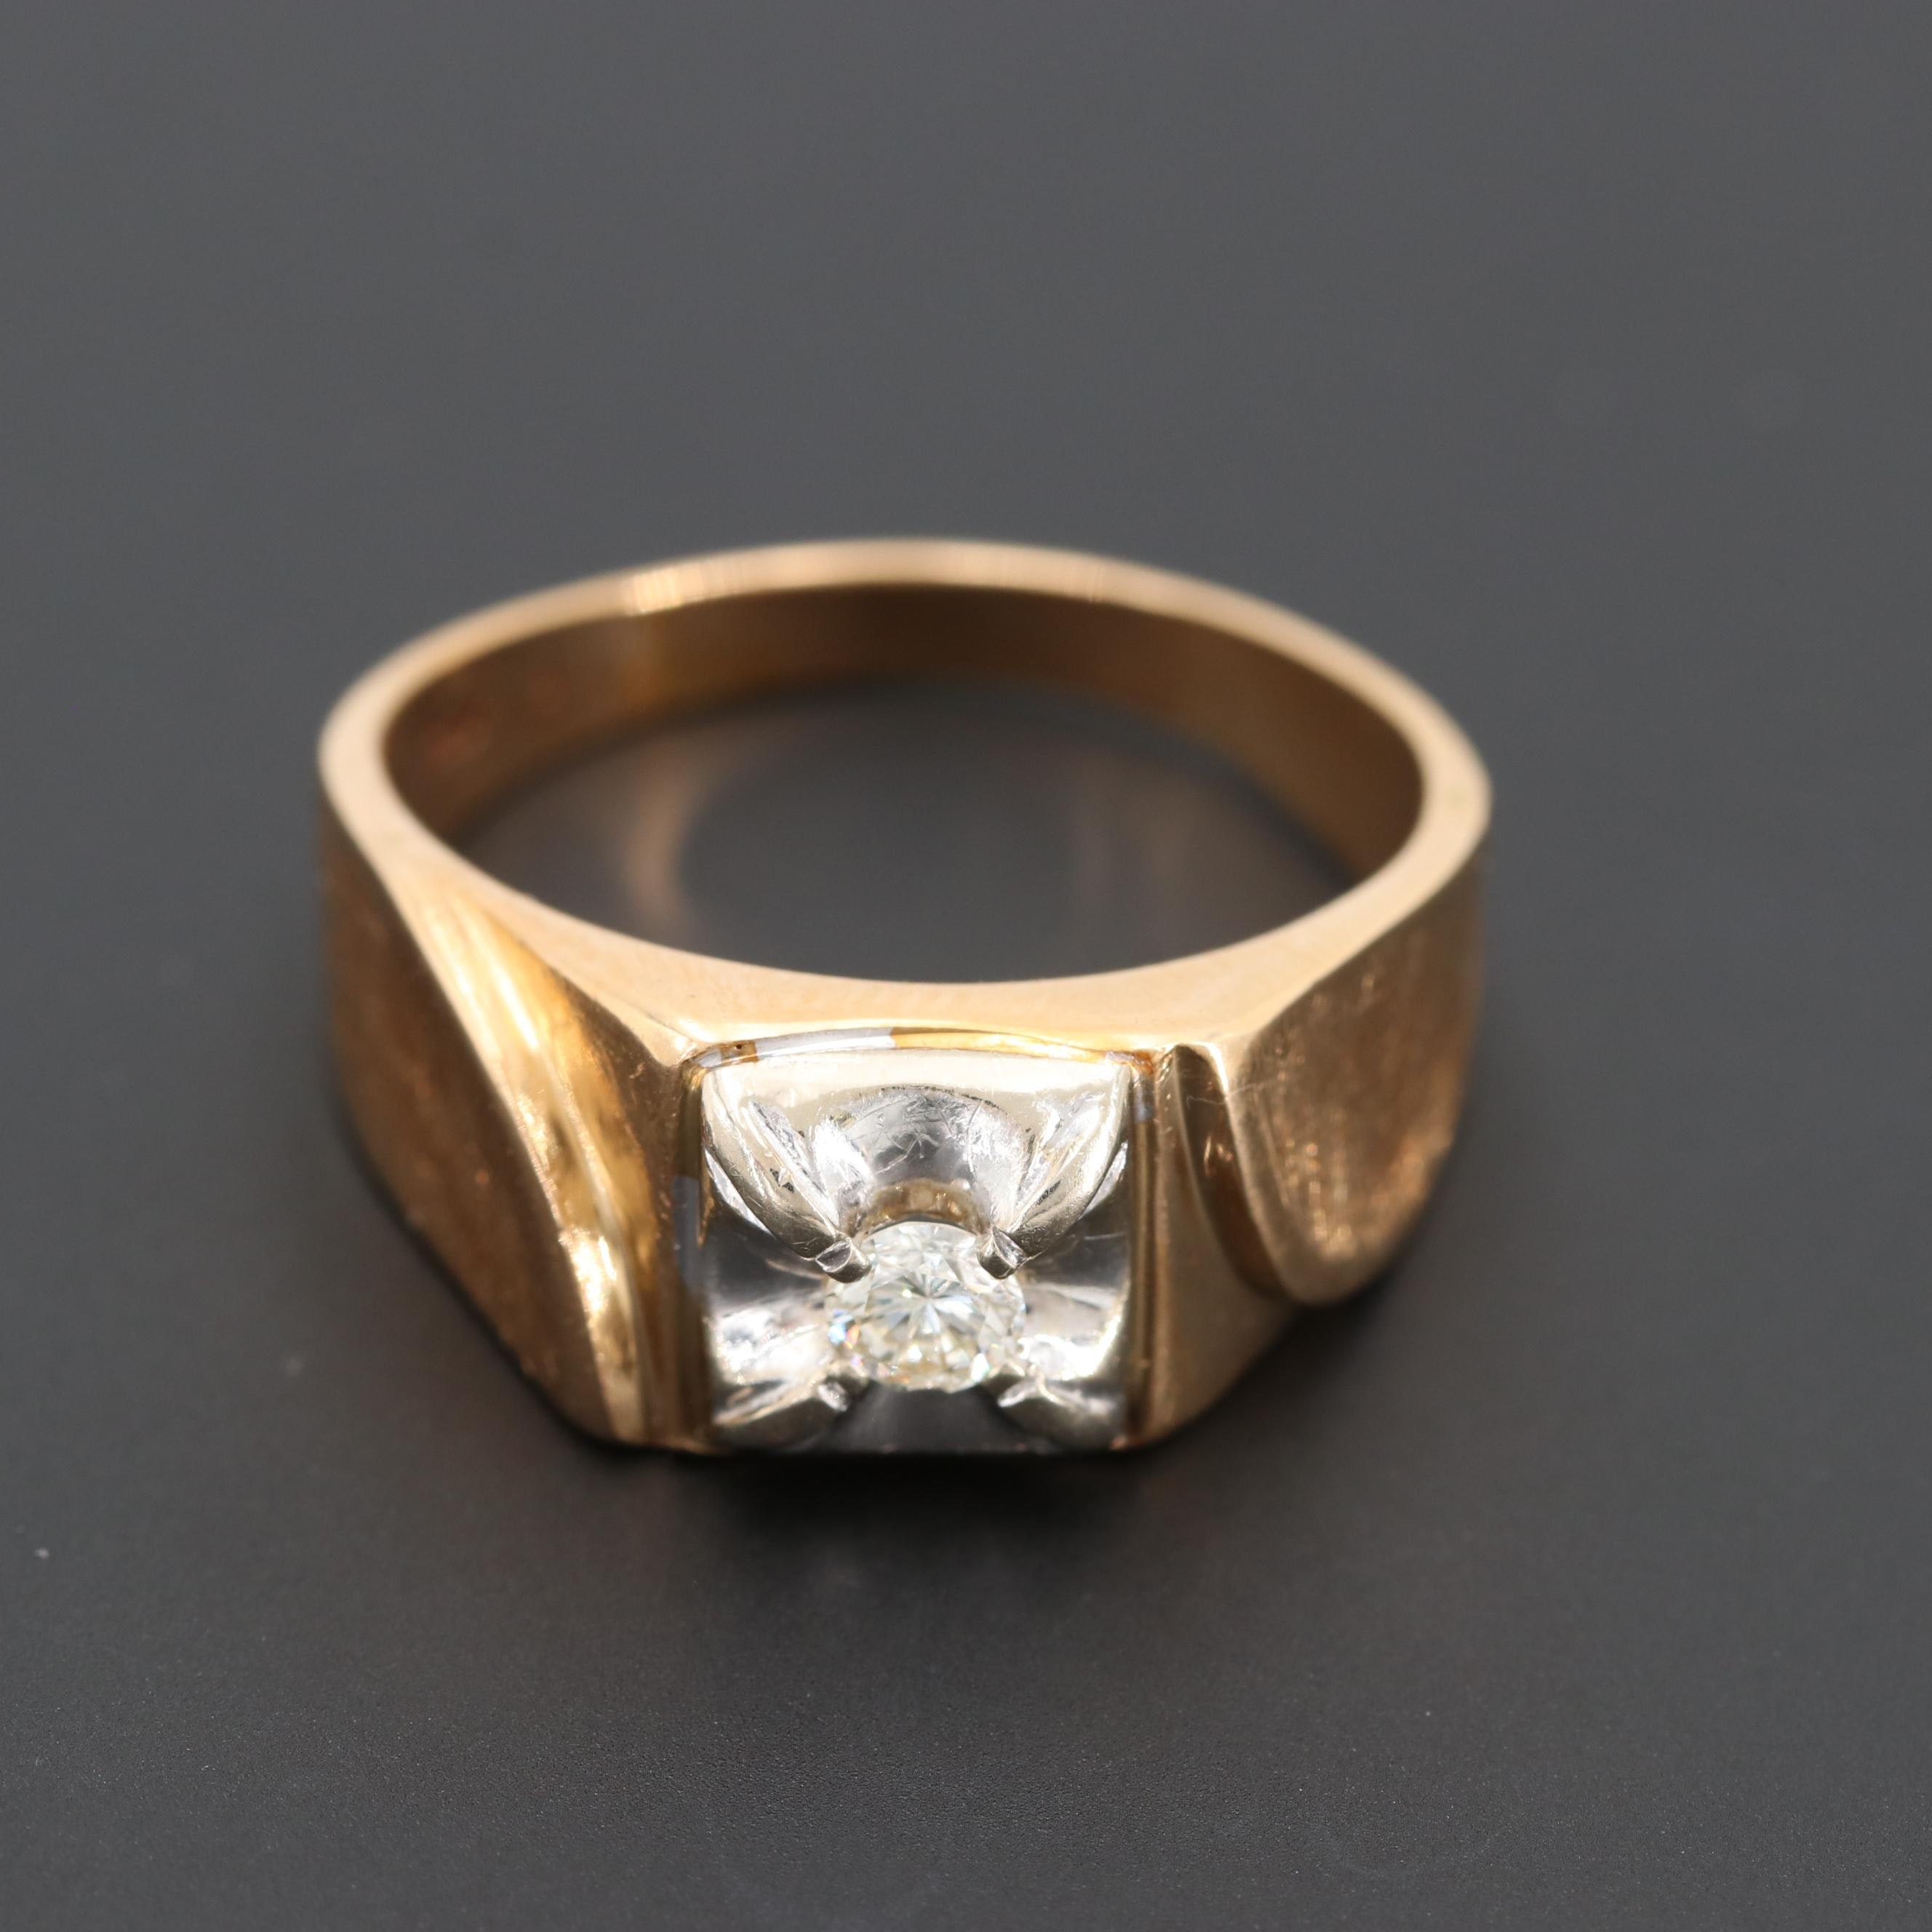 14K Yellow Gold Diamond Ring with White Gold and Florentine Finish Accents